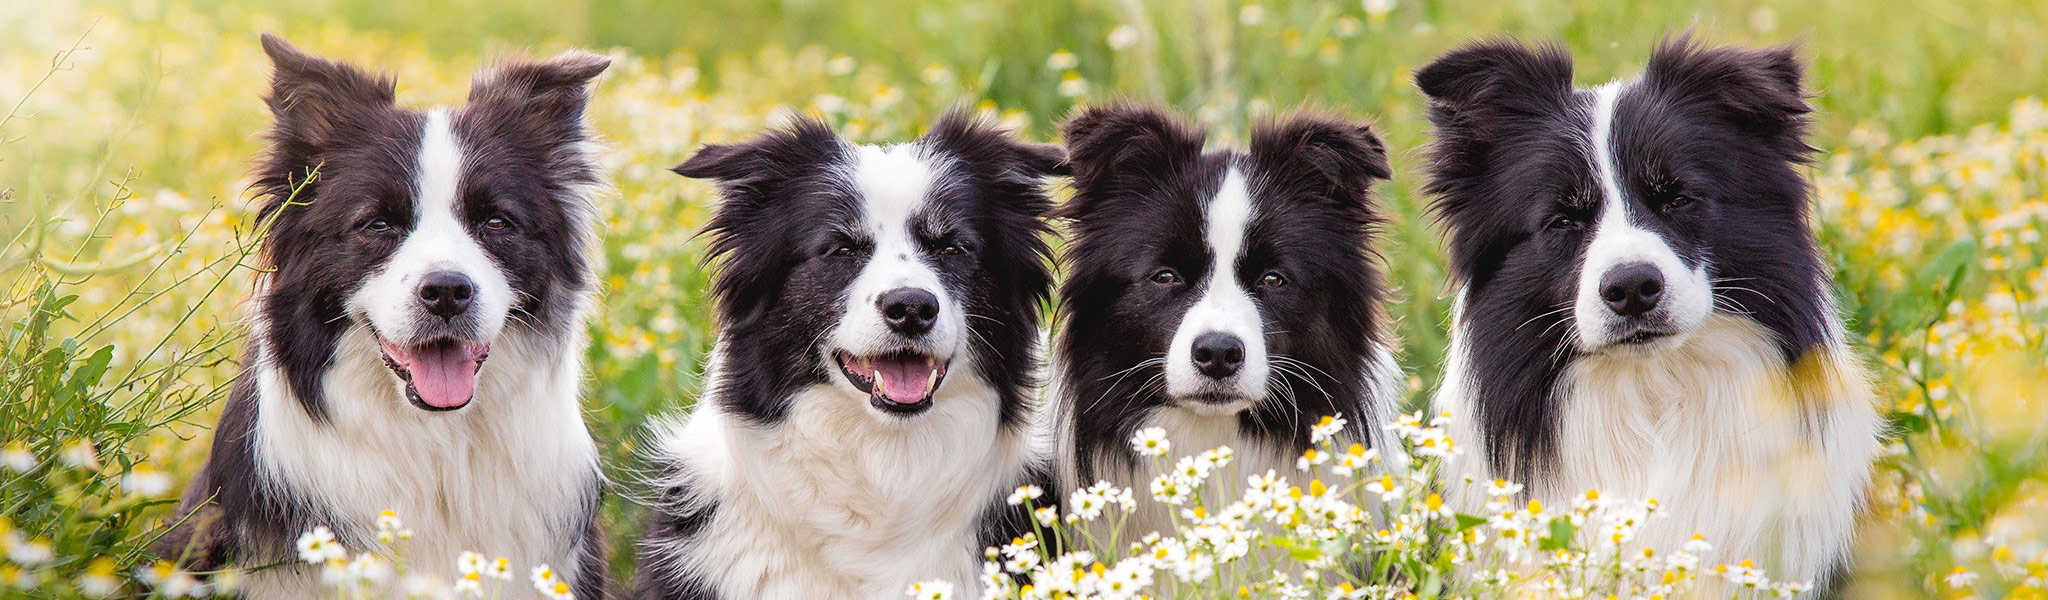 Vier Border Collies im Portrait